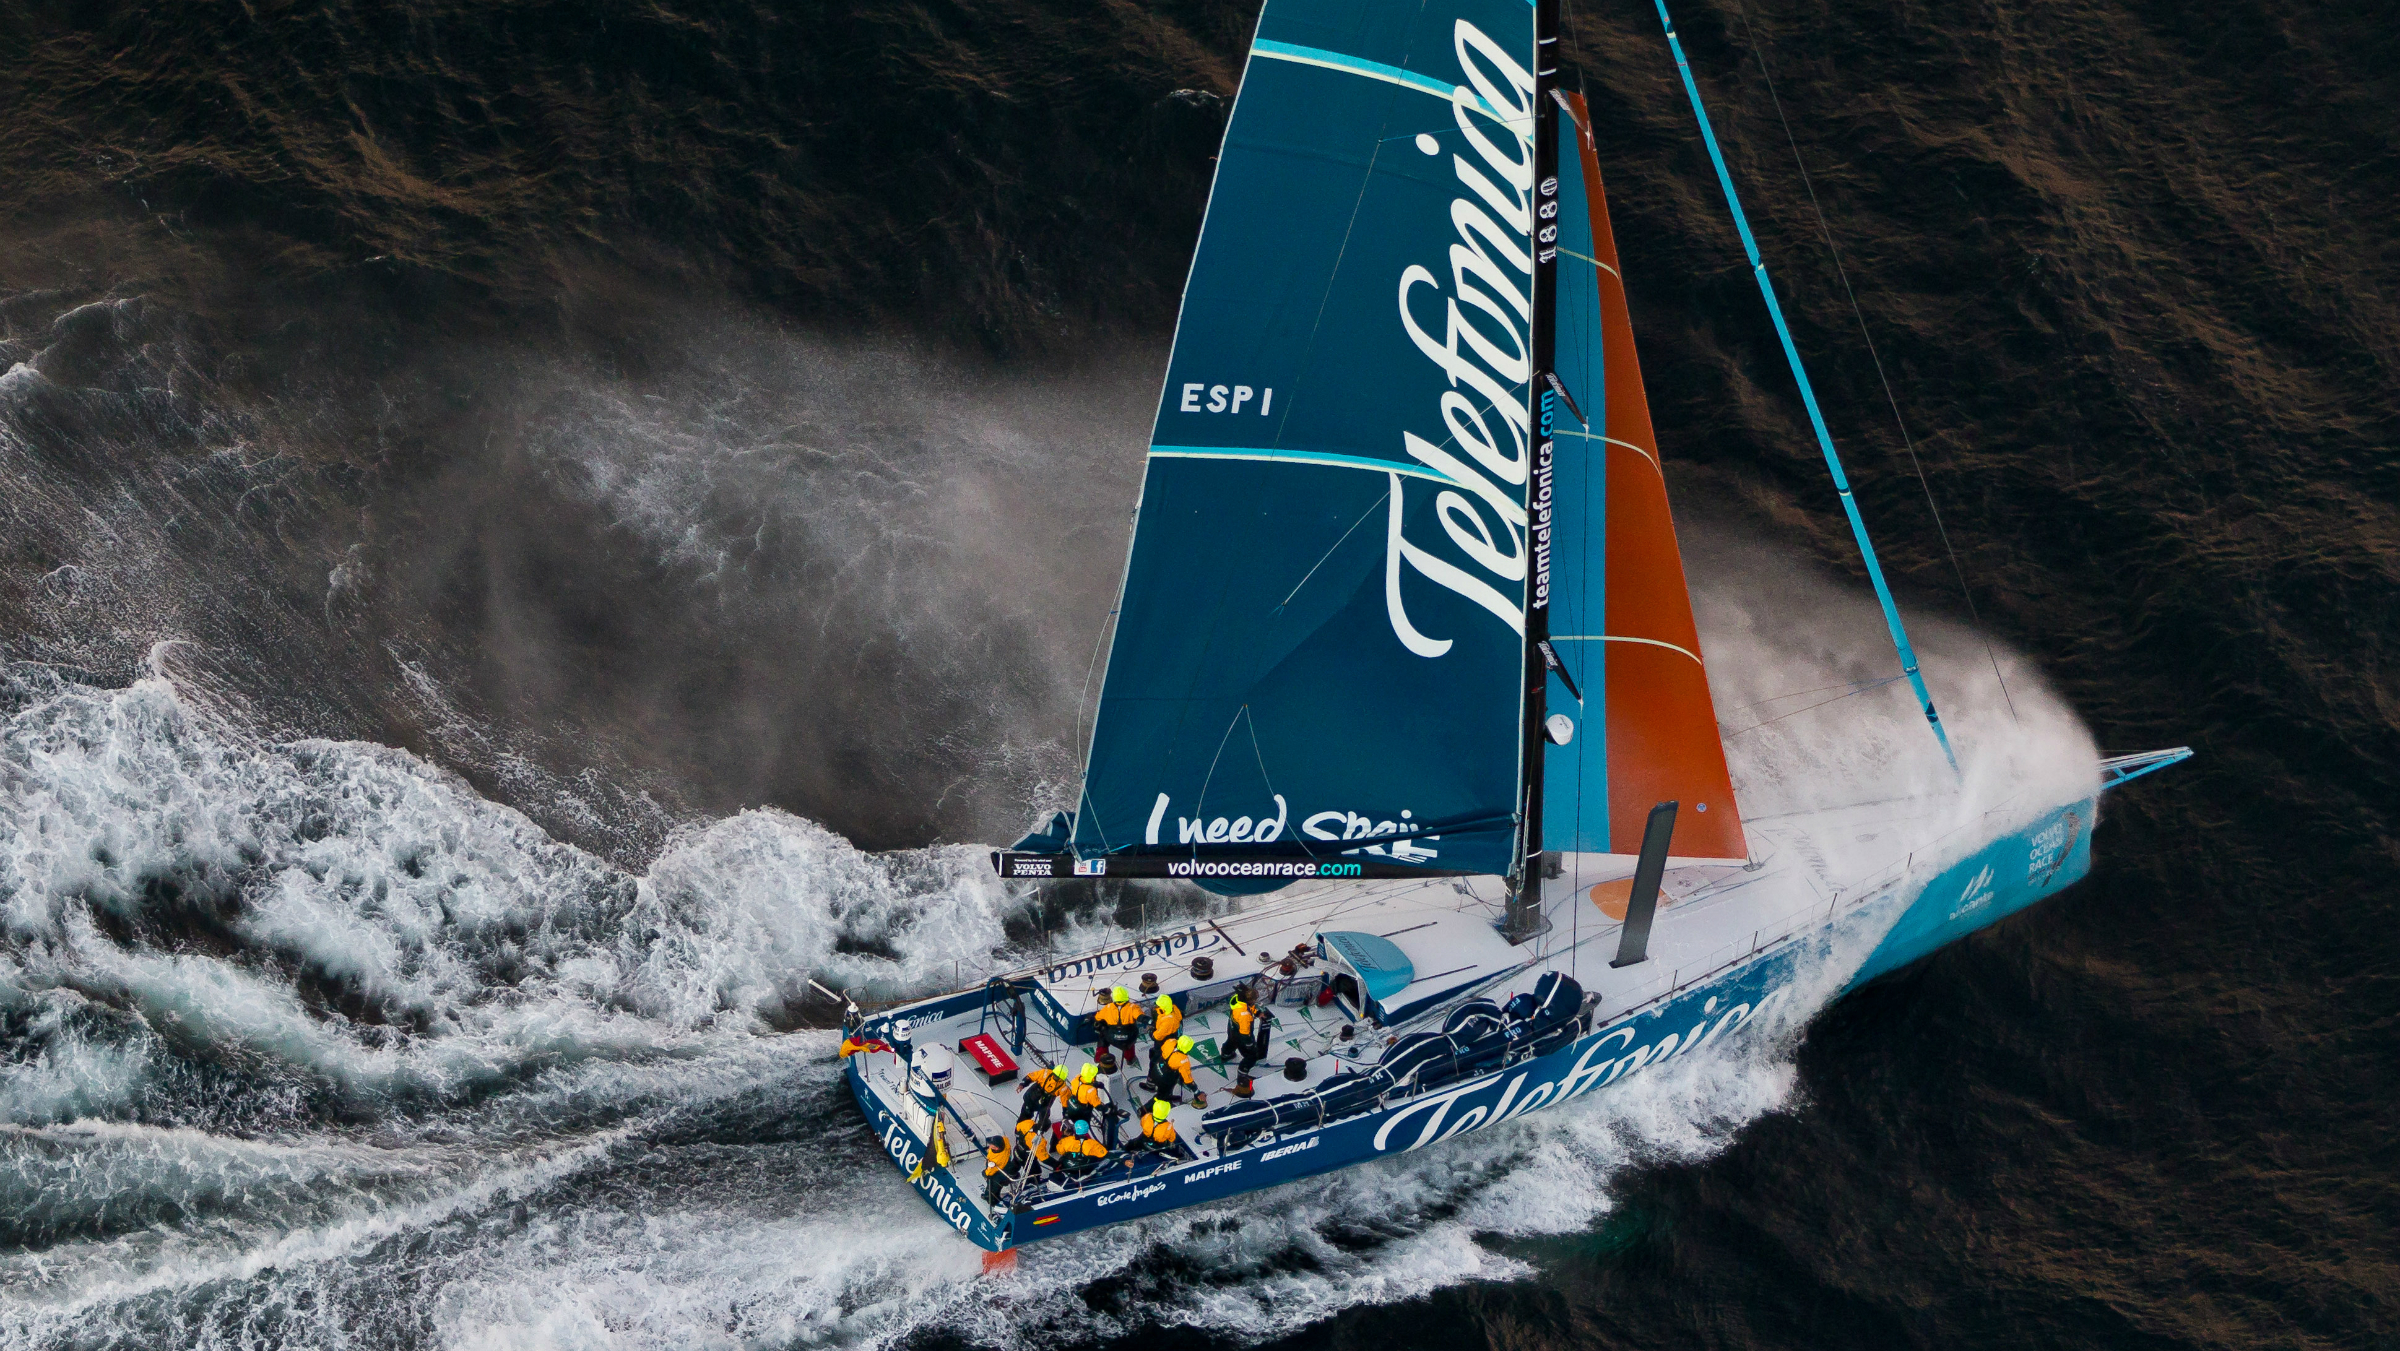 In this photograph supplied by Volvo Ocean Race, Spanish team Team Telefonica, skippered by Iker Martinez, finish the first of leg 1 of the Volvo Ocean Race 2011-12 from Alicante, Spain to Cape Town, South Africa Saturday, Nov 26, 2011 to take the lead in the competition. (AP Photo/Ian Roman/Volvo Ocean Race photo via AP Images) EDITORIAL USE ONLY